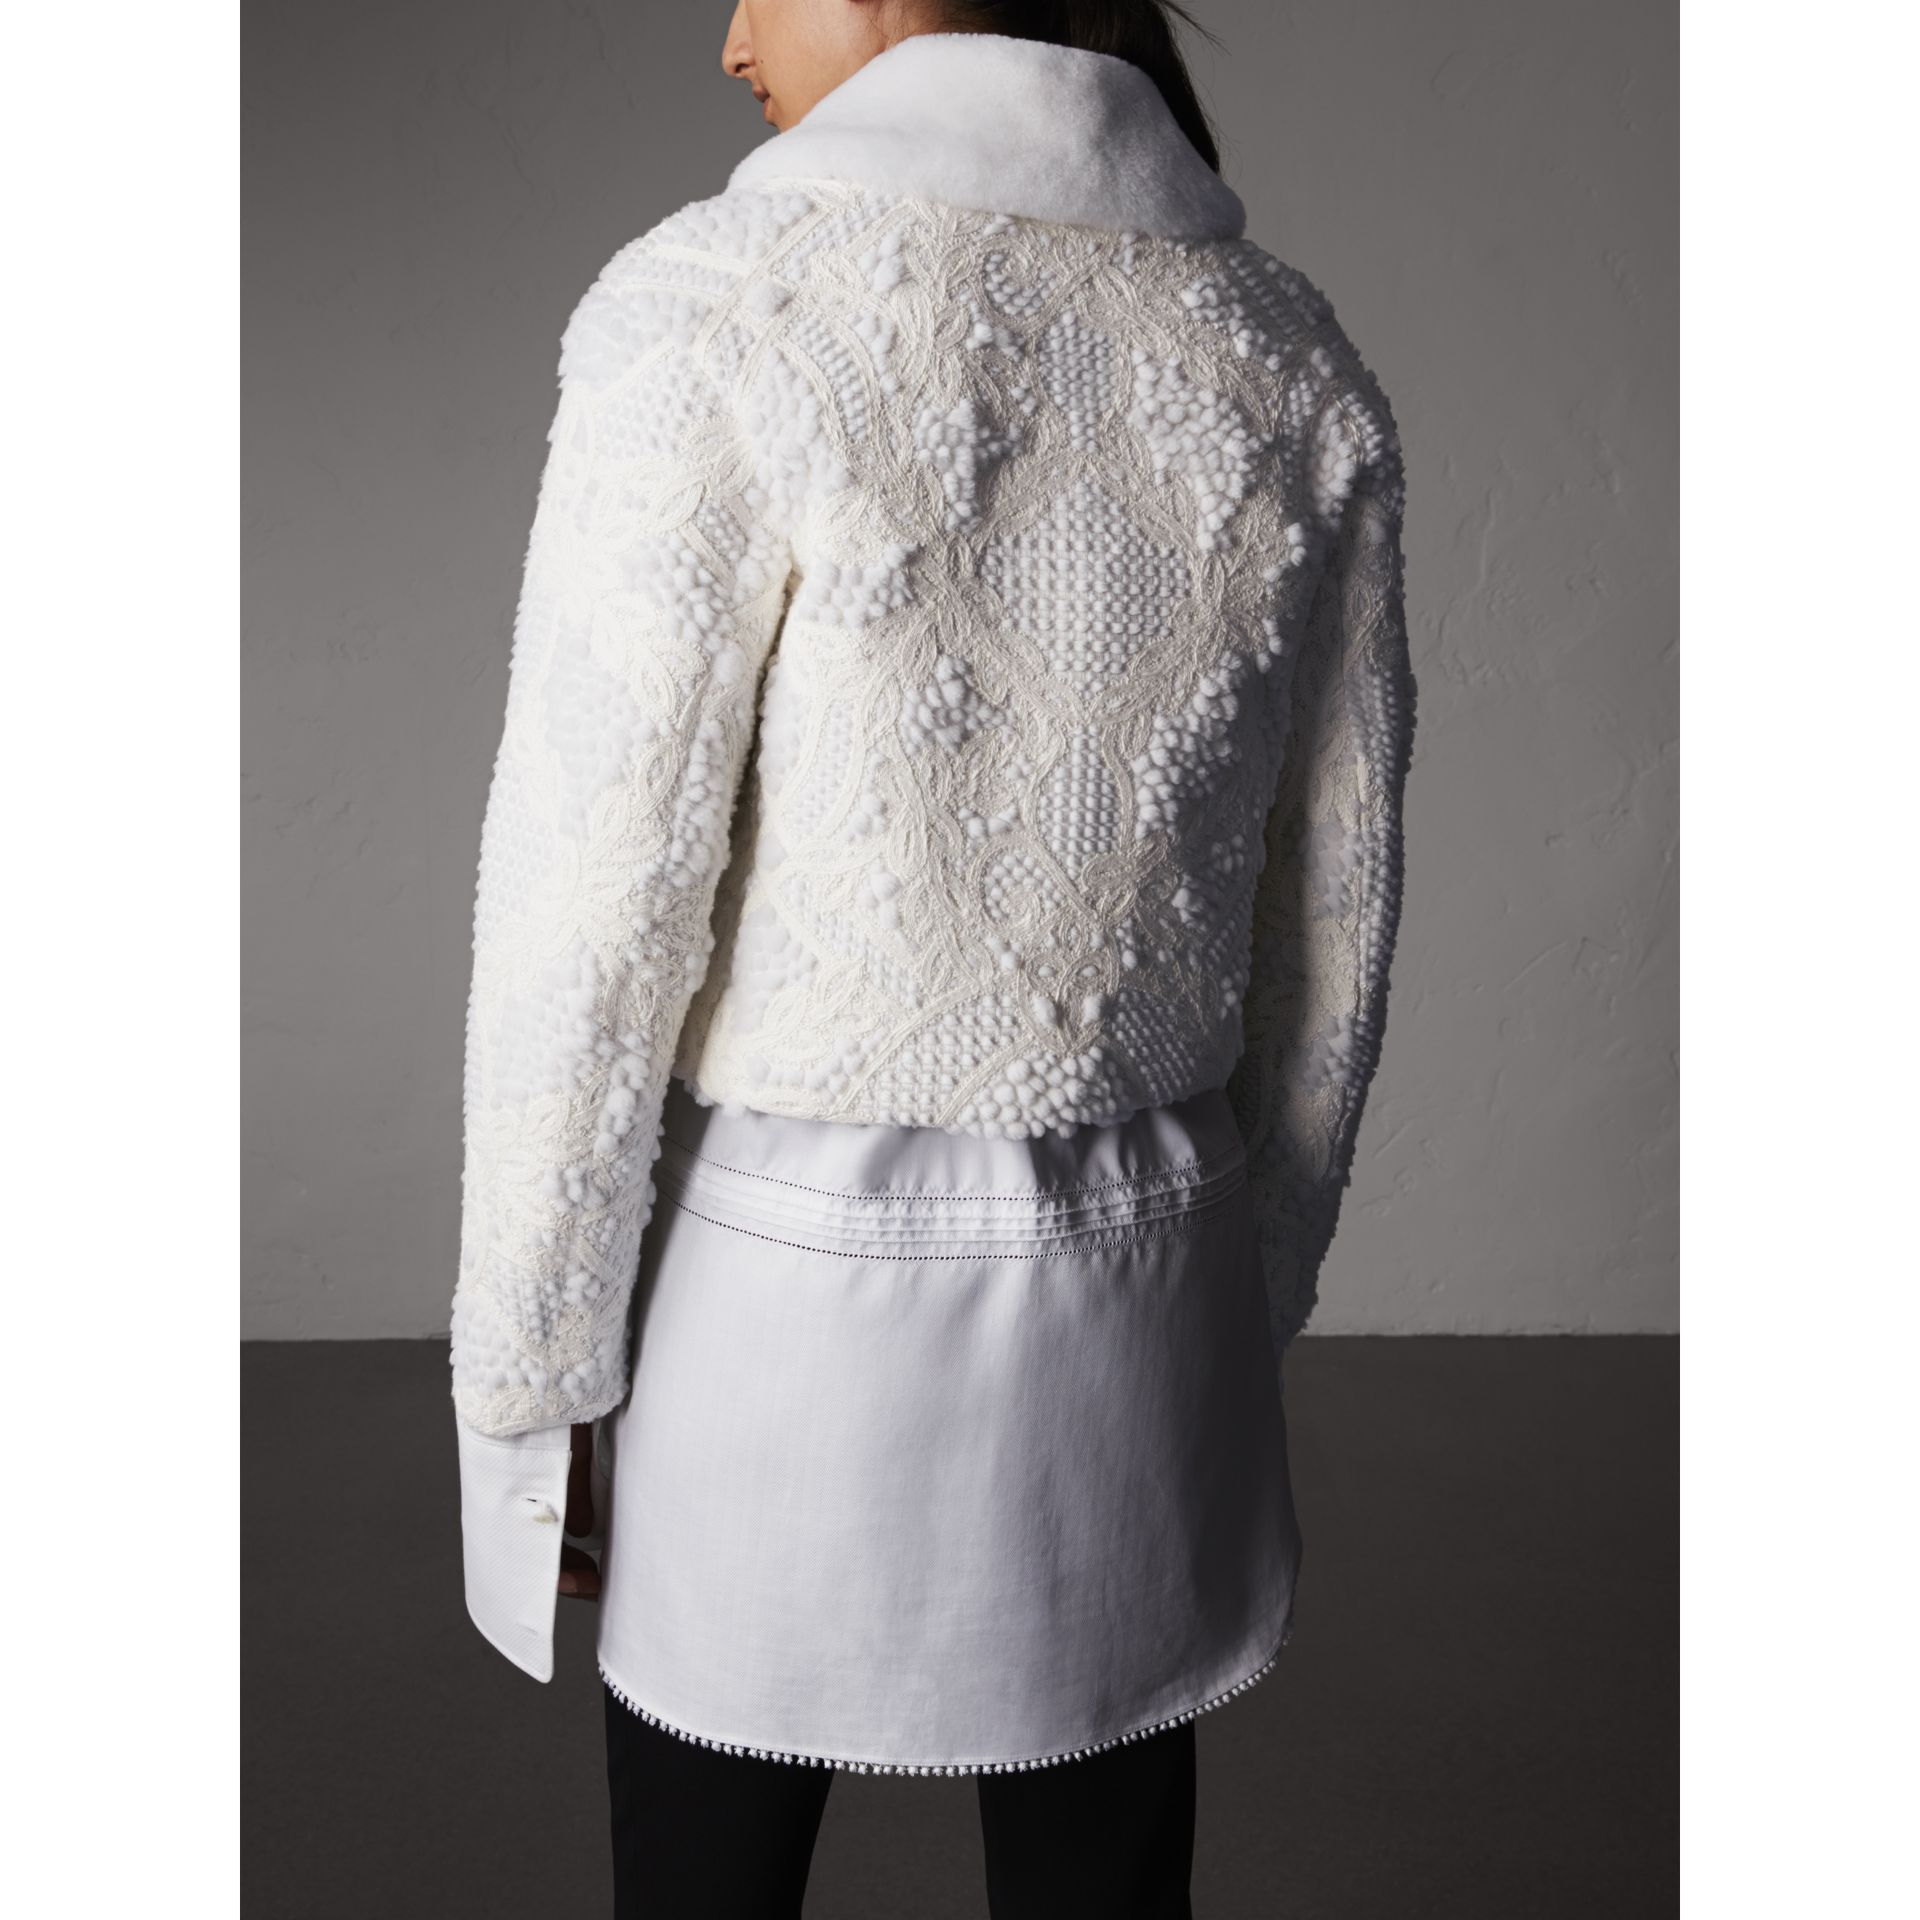 Macramé Lace-embellished Shearling Jacket in White - Women | Burberry Australia - gallery image 2